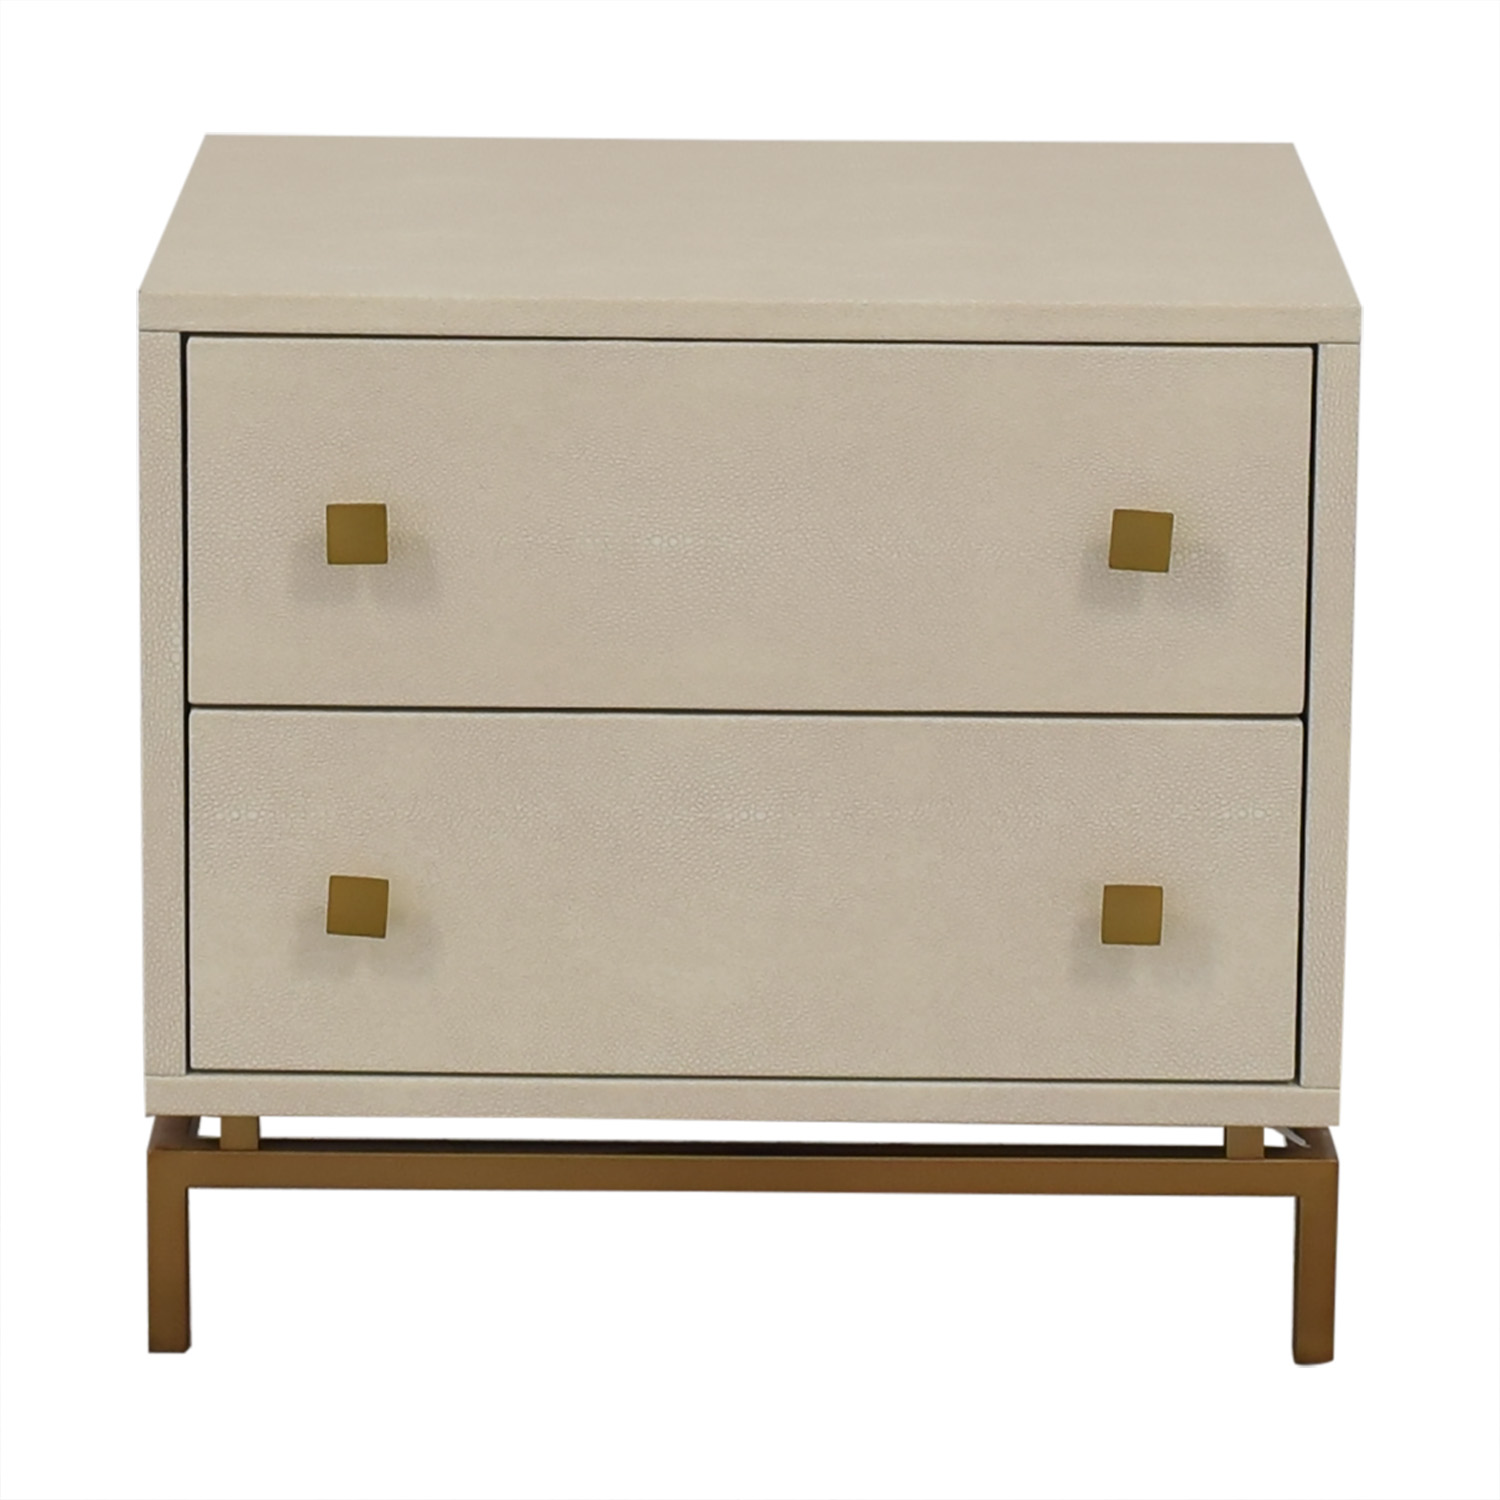 CB2 Ivory Shagreen Embossed Nightstand / Tables